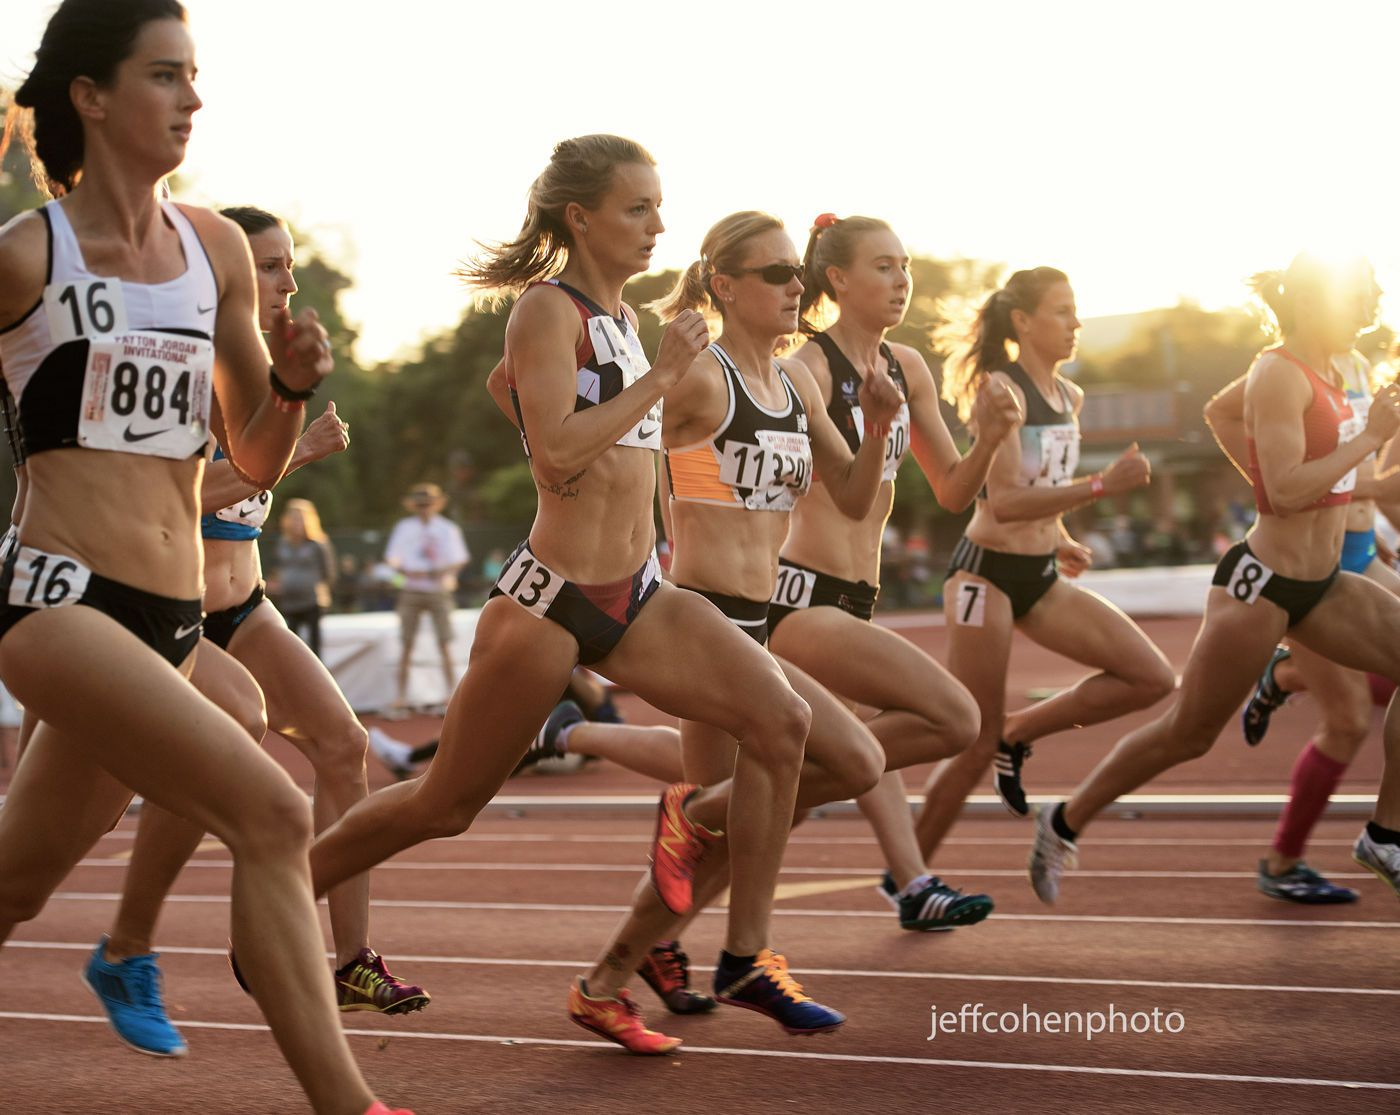 1payton_jordan_meet_lauren_wallace_1500_5_1_16__jeff_cohen_photo_1489_web.jpg